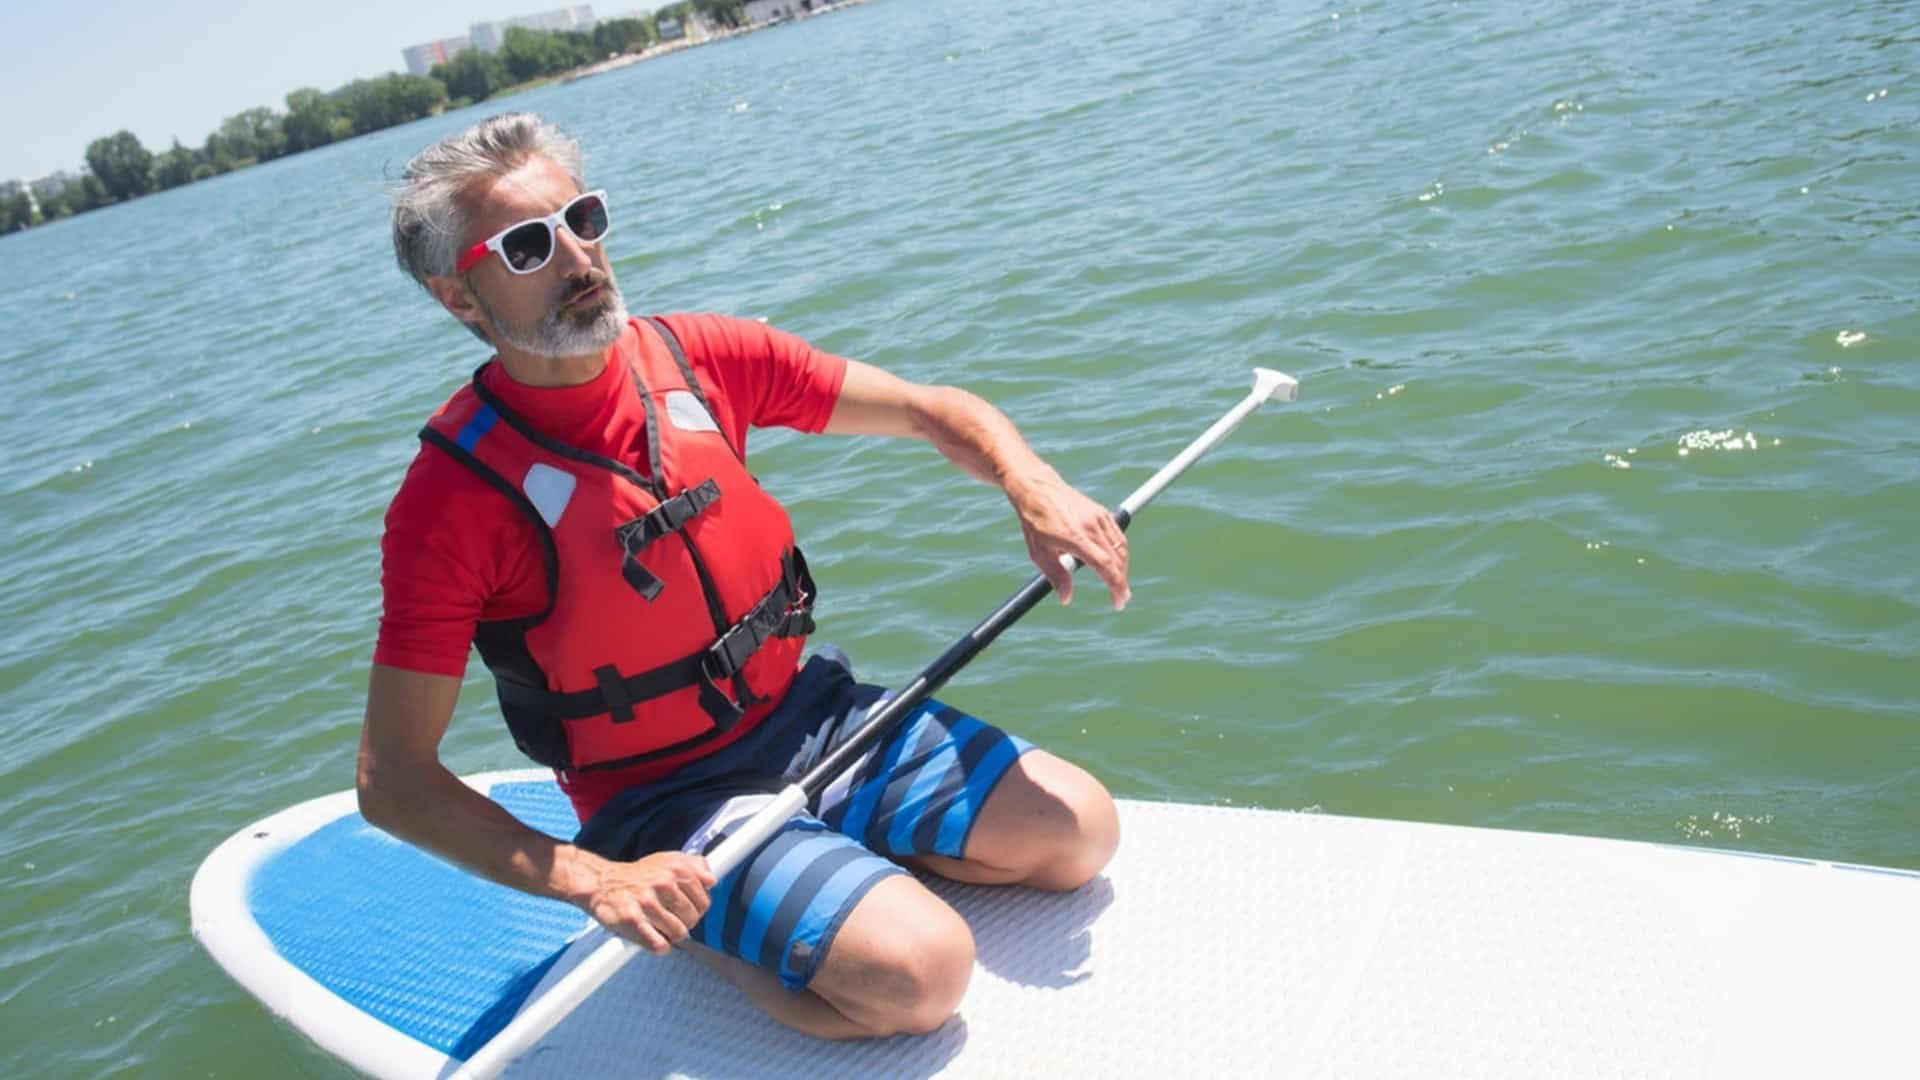 Life Jackets for SUP